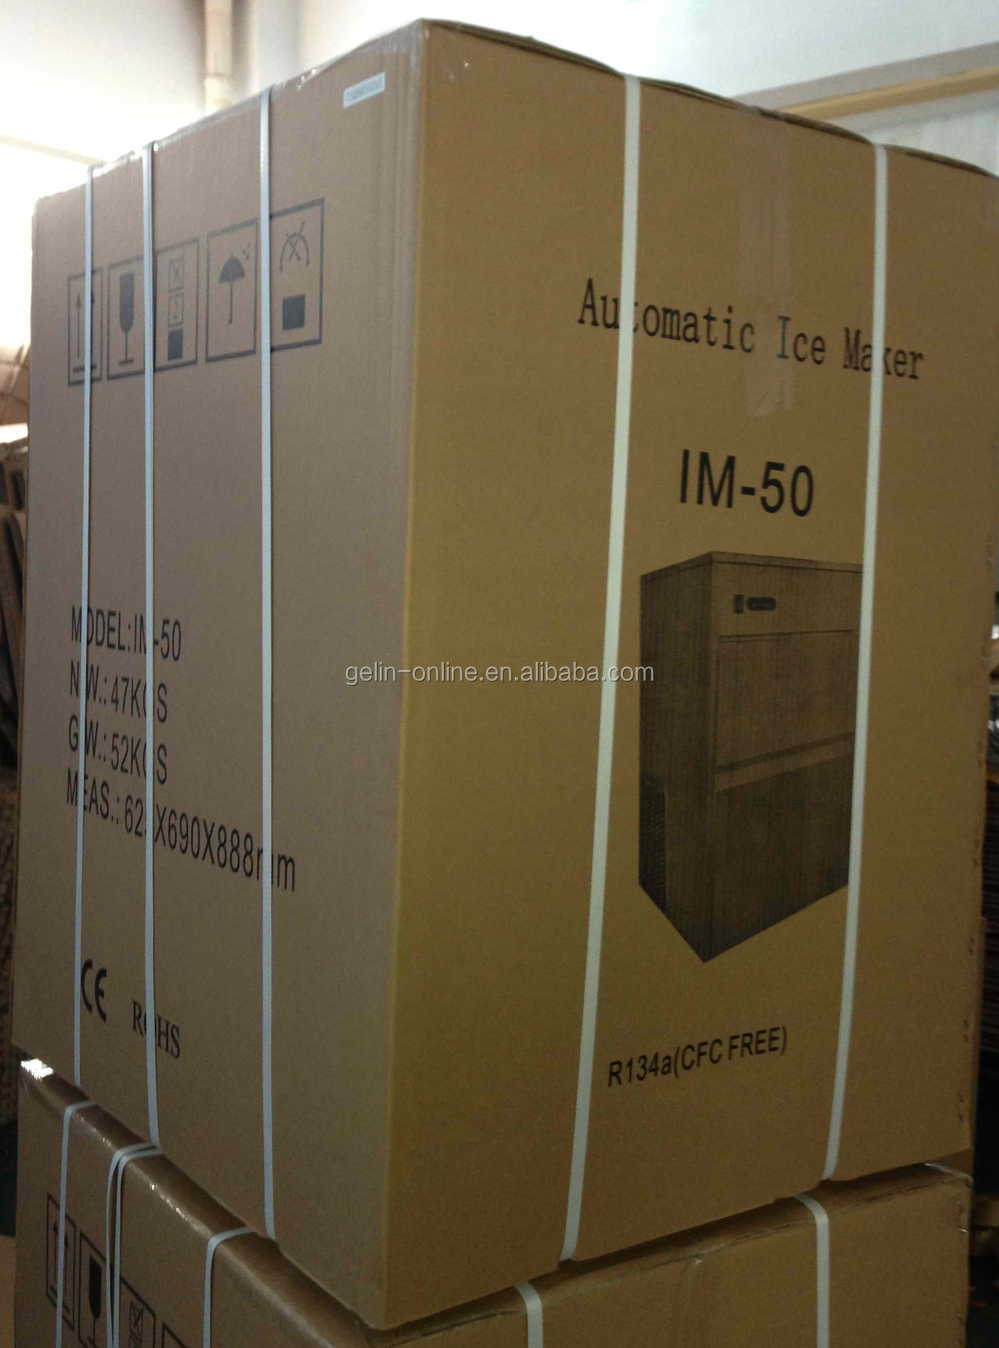 Bullet type ice maker IM-25